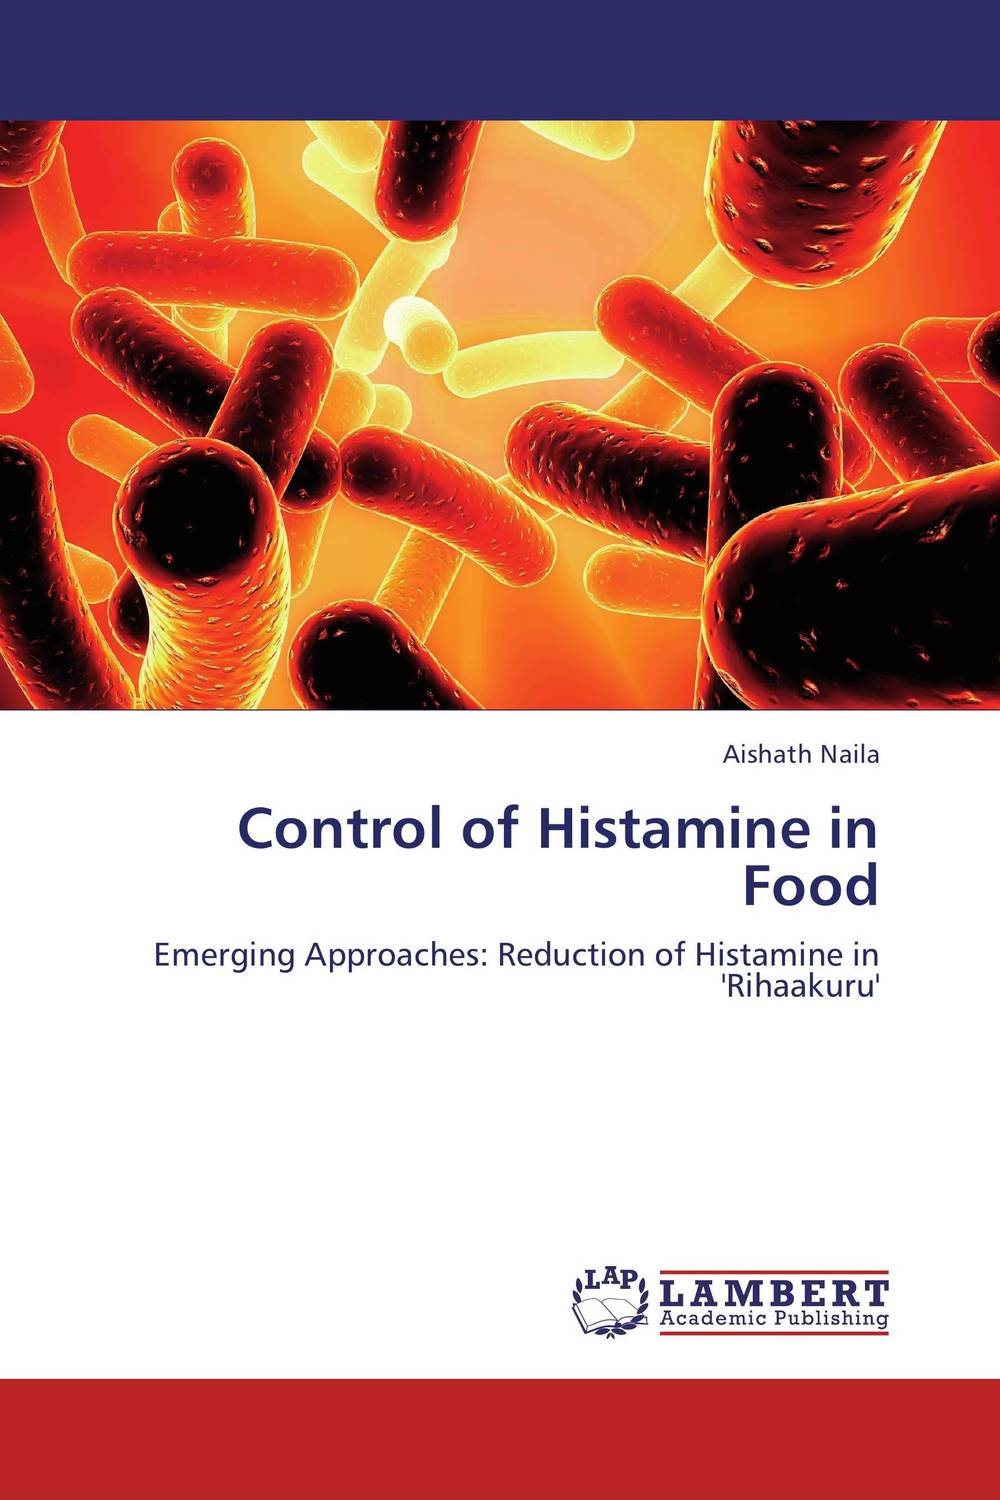 Control of Histamine in Food thermo operated water valves can be used in food processing equipments biomass boilers and hydraulic systems